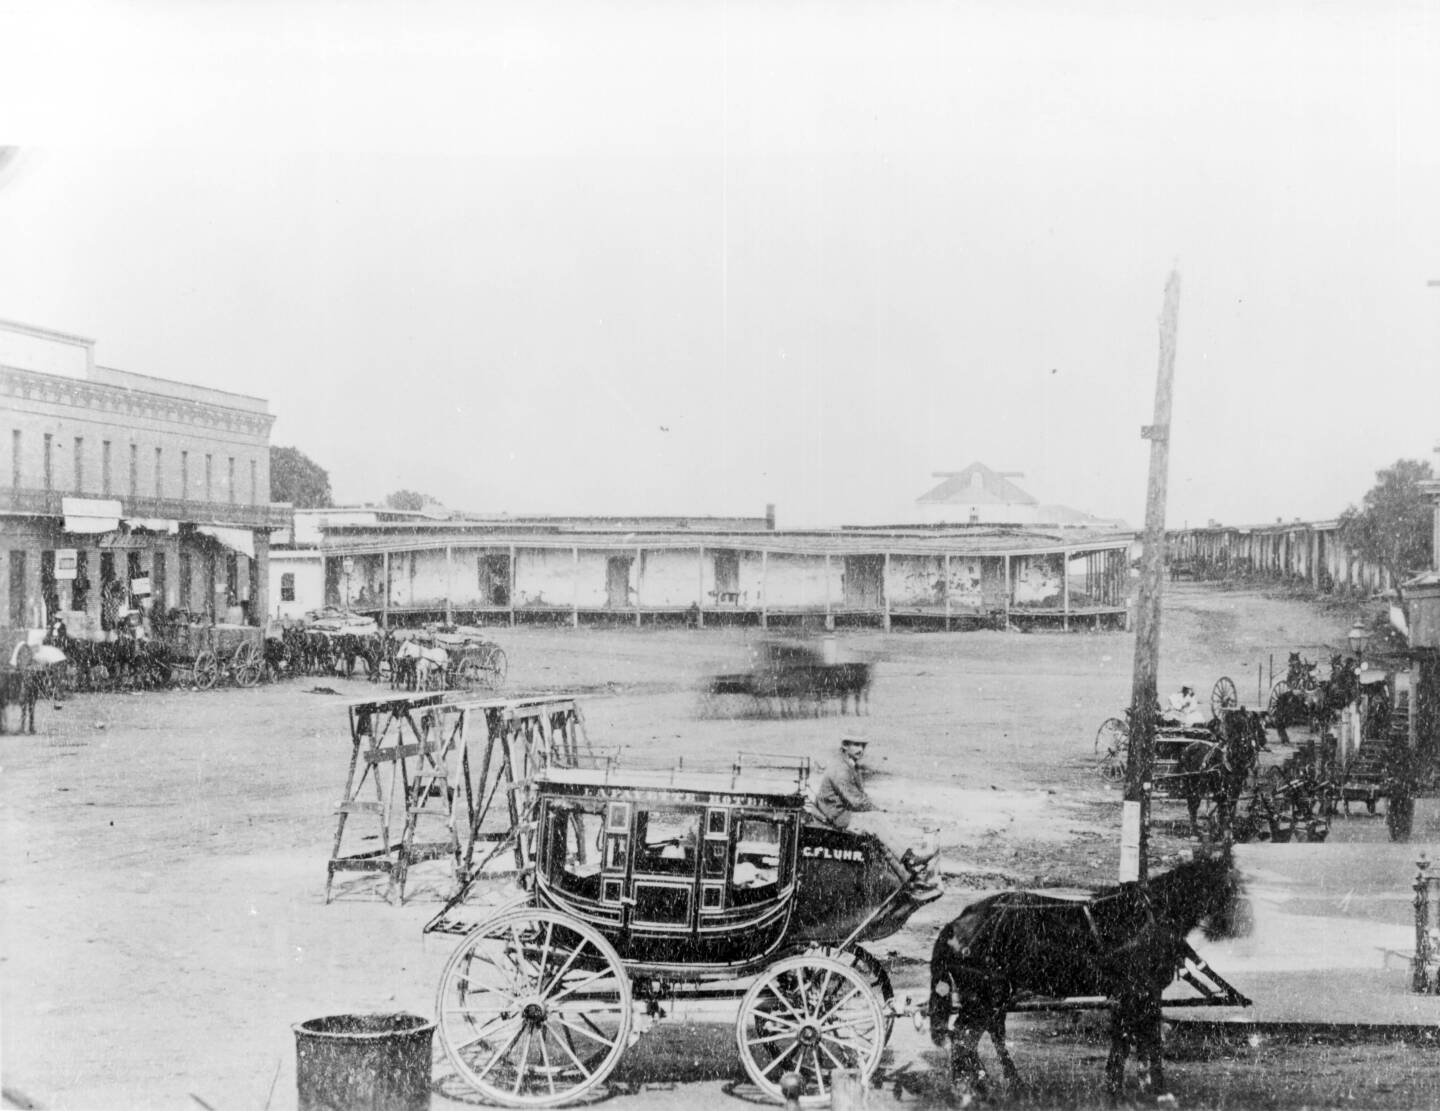 Old Chinatown, Los Angeles, which was the scene of Chinese riots of 1871